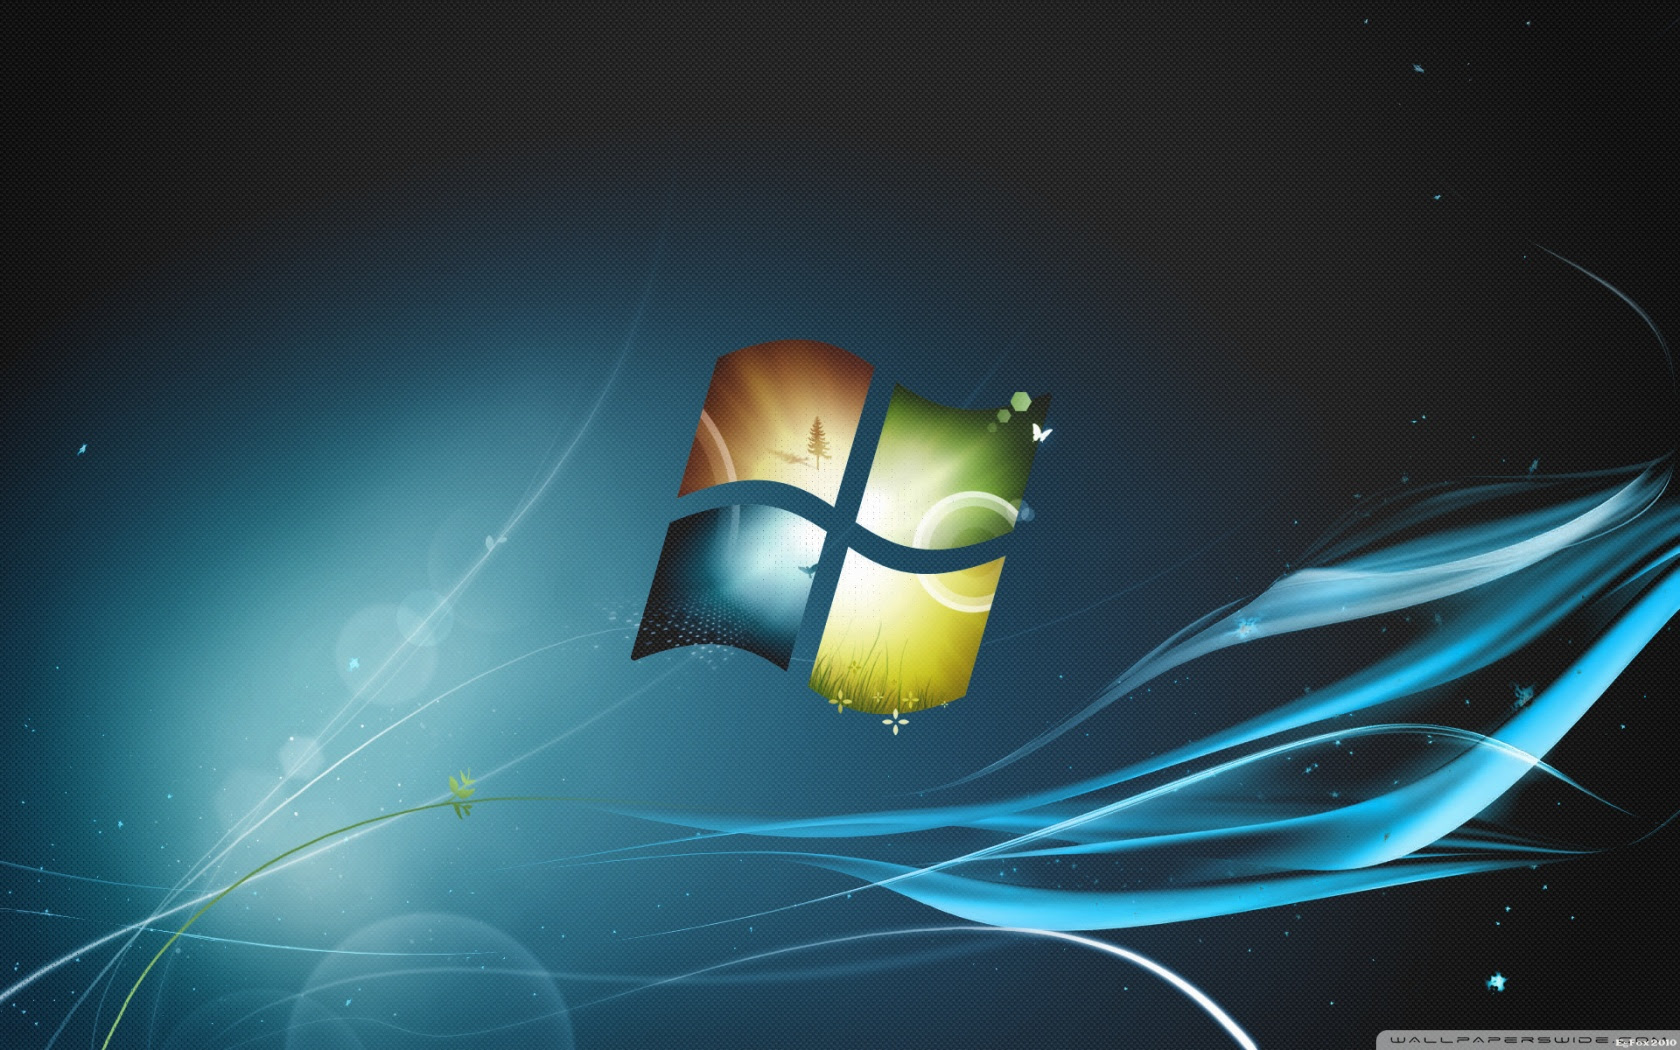 Windows 7 Fire Wallpaper The Champion Wallpapers